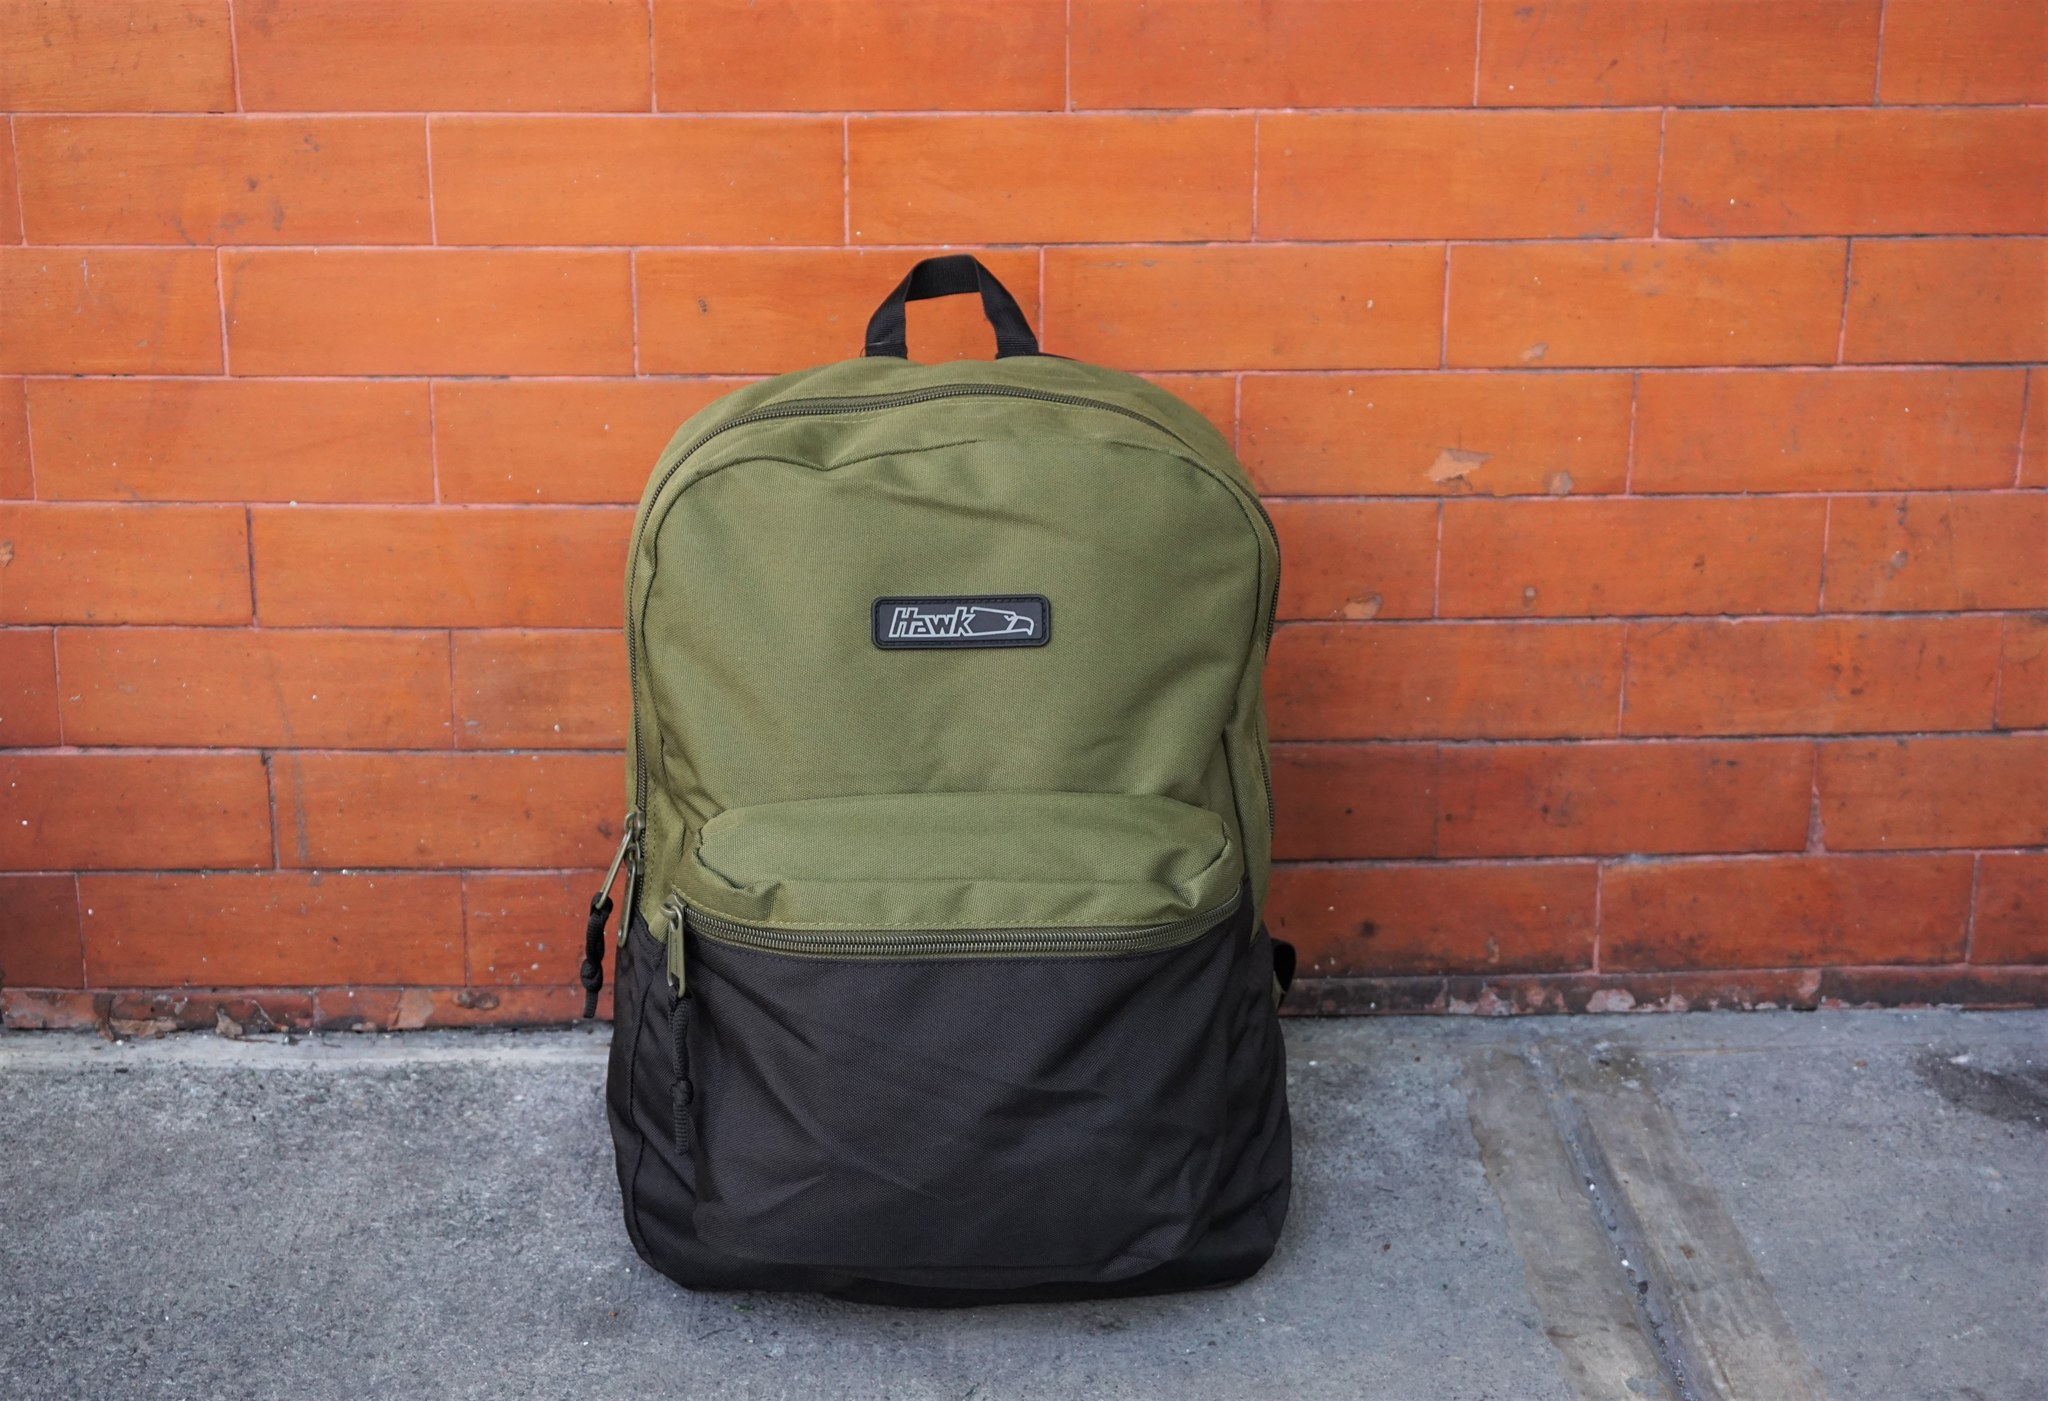 Hawk Bags  Fatigue Black Backpack is for the Stylish Male Students ... 25a059a4b8